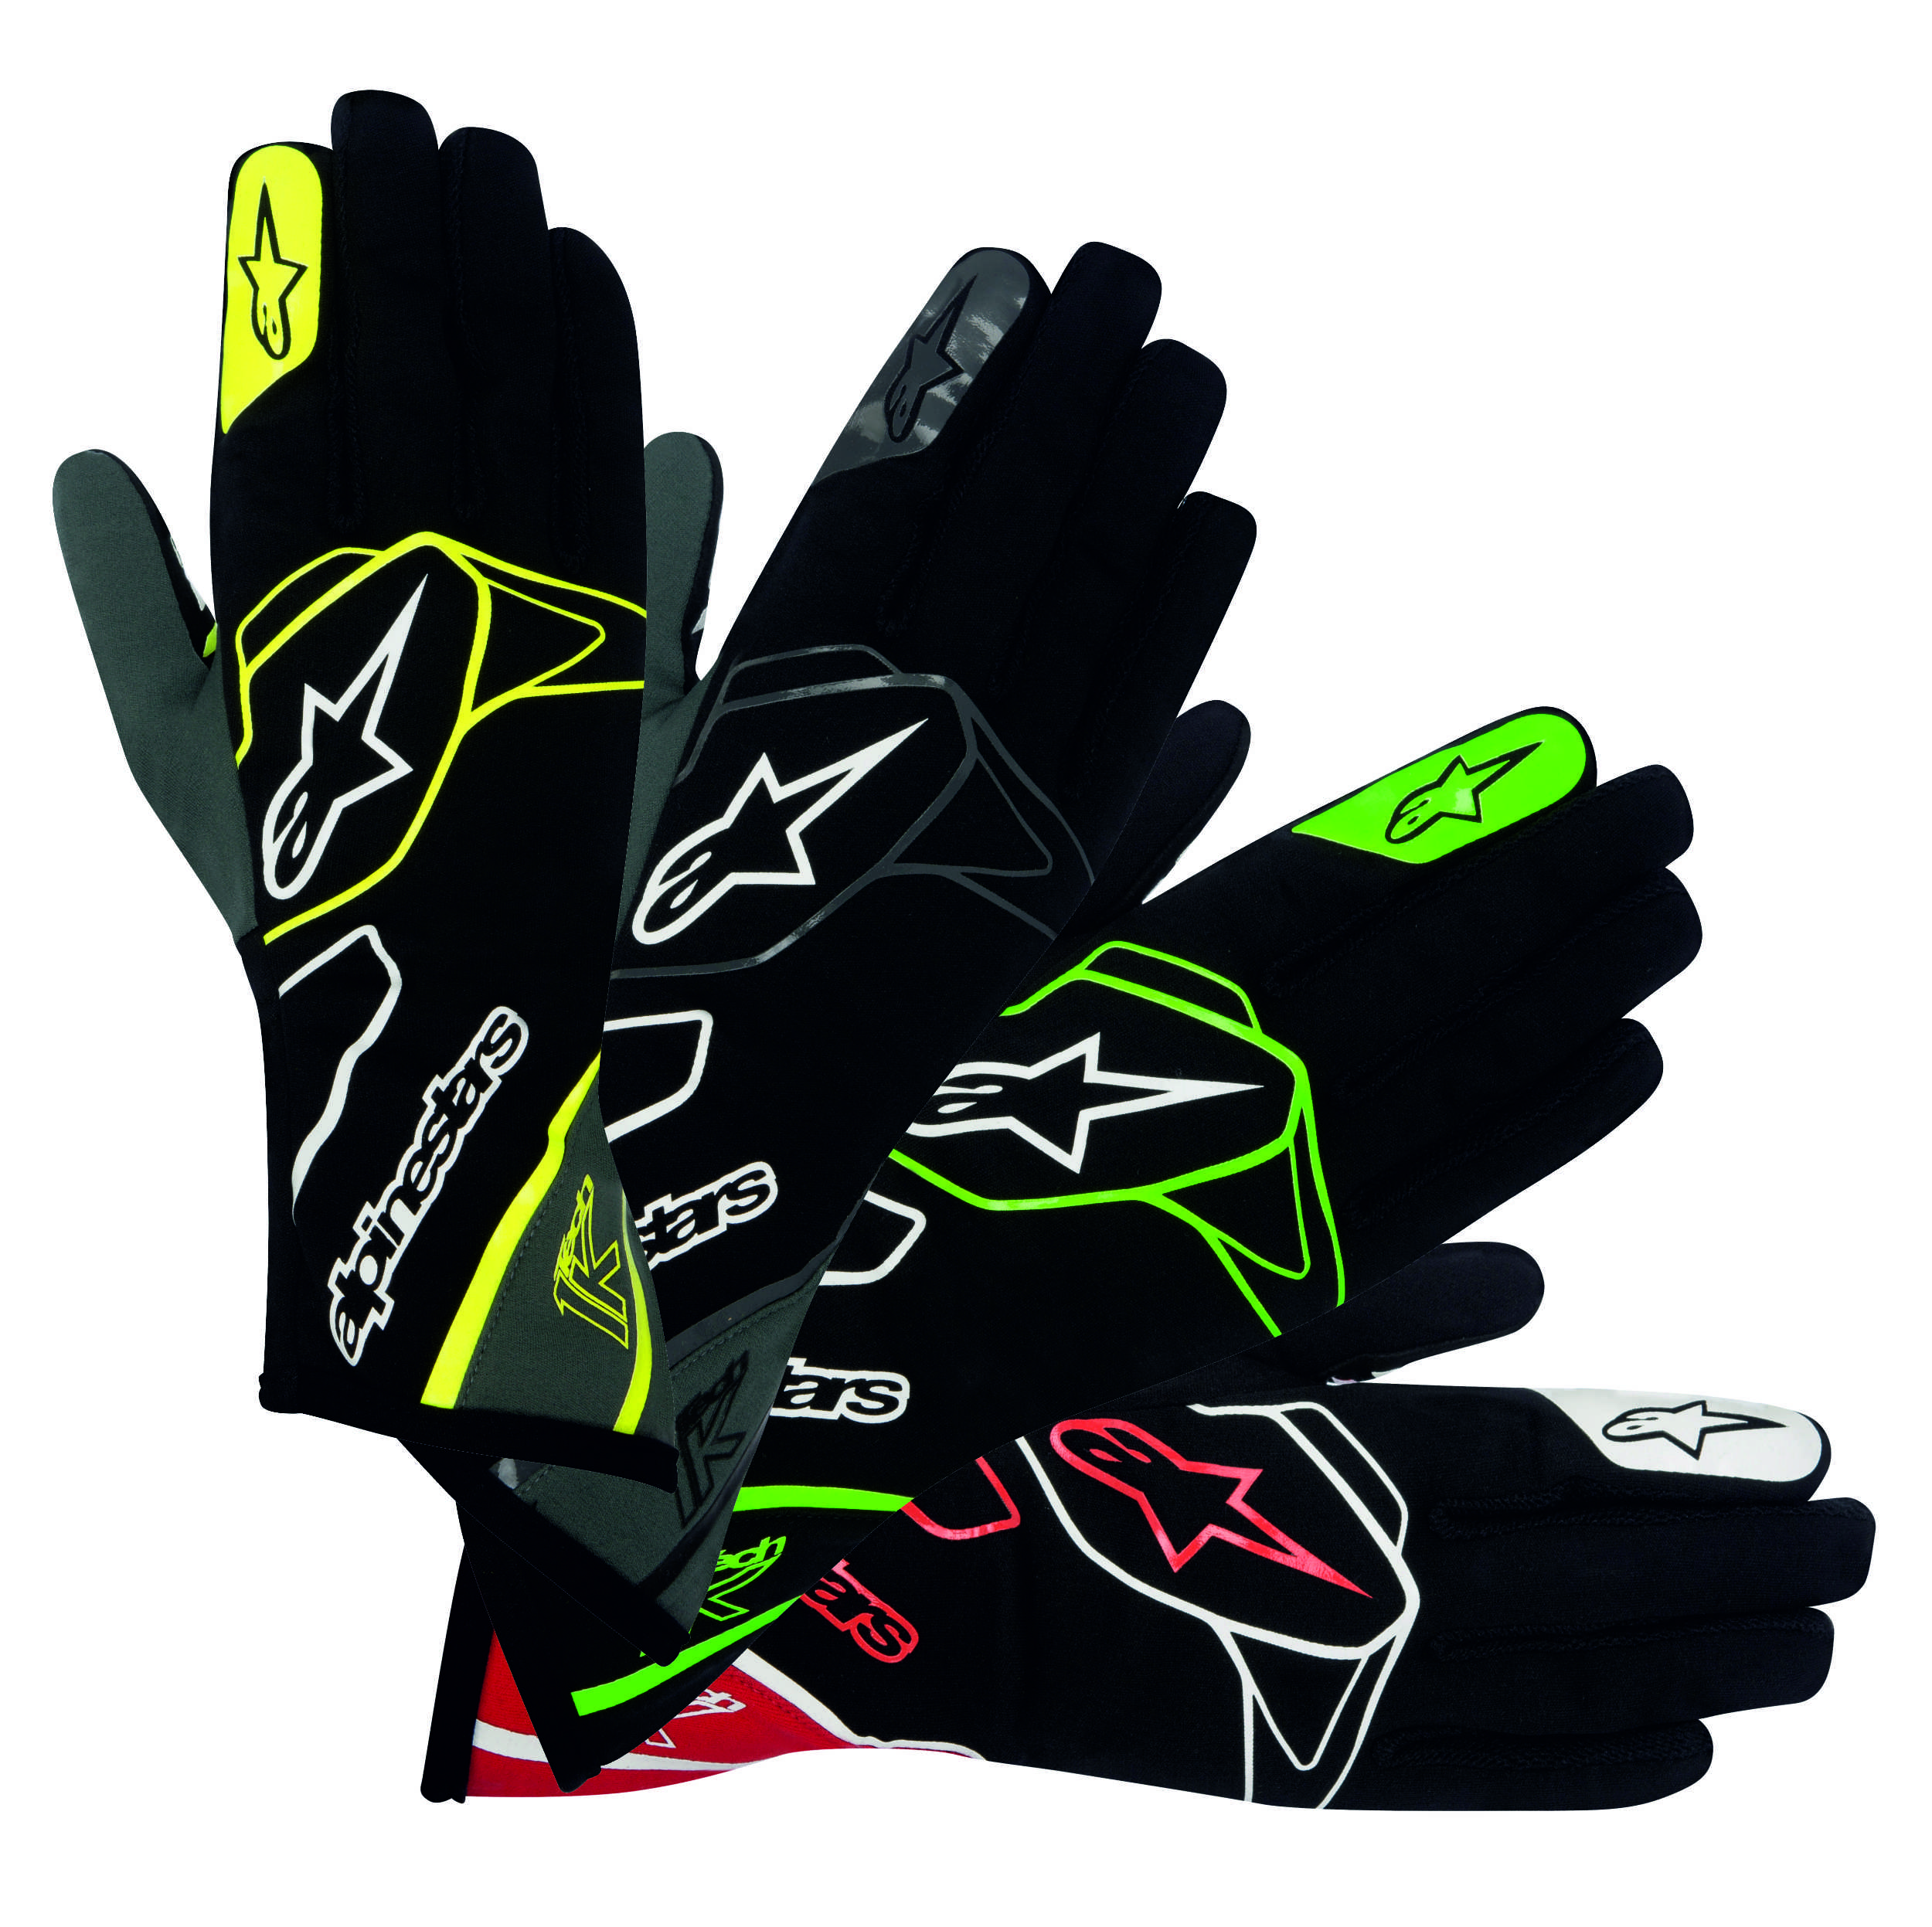 Alpinestars Rukavice Tech 1-K